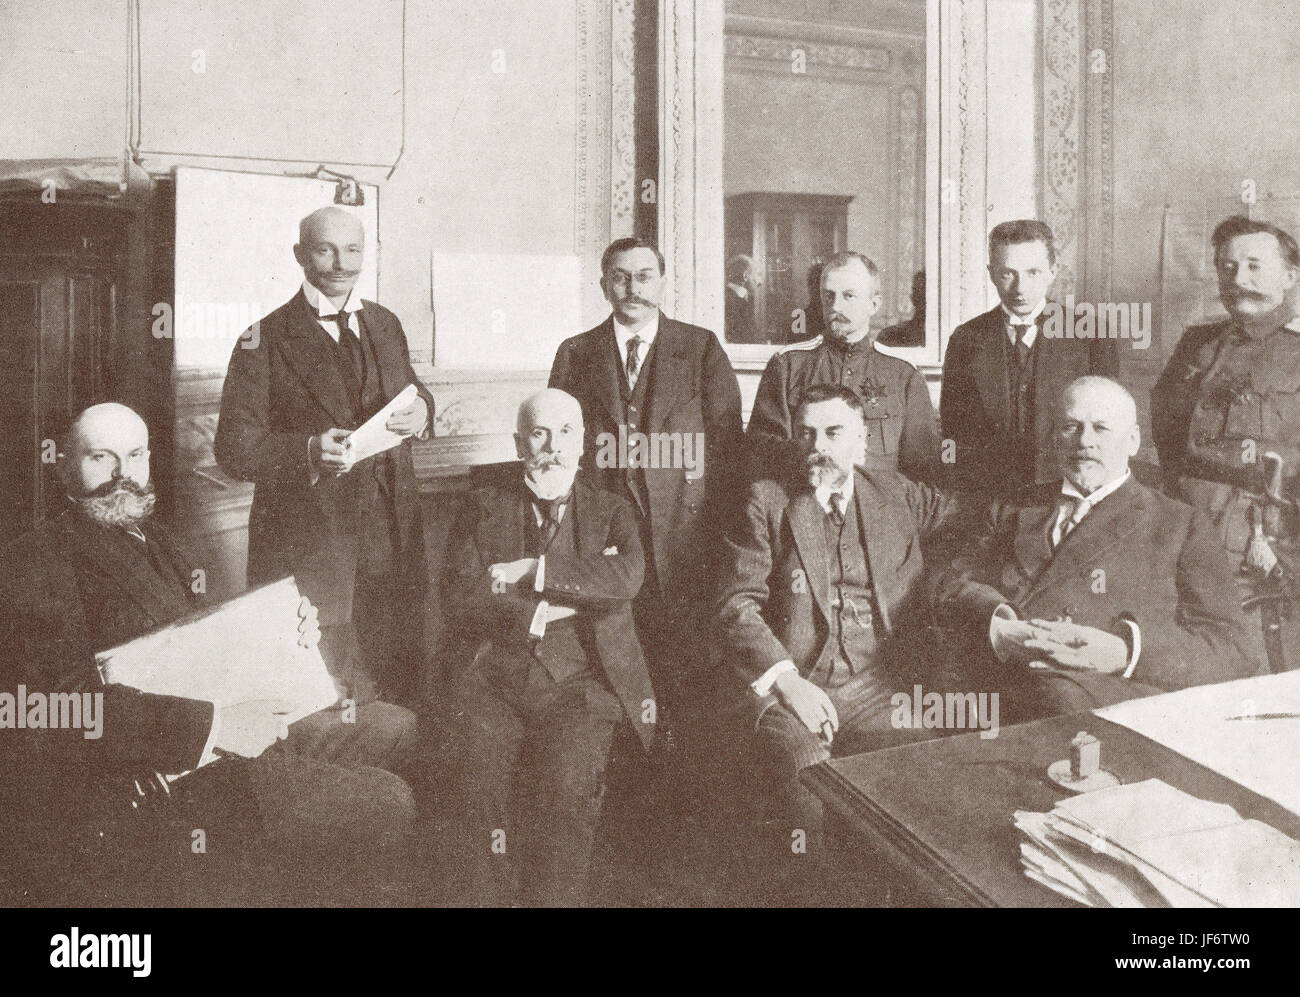 Leaders February Russian Revolution 1917 - Stock Image